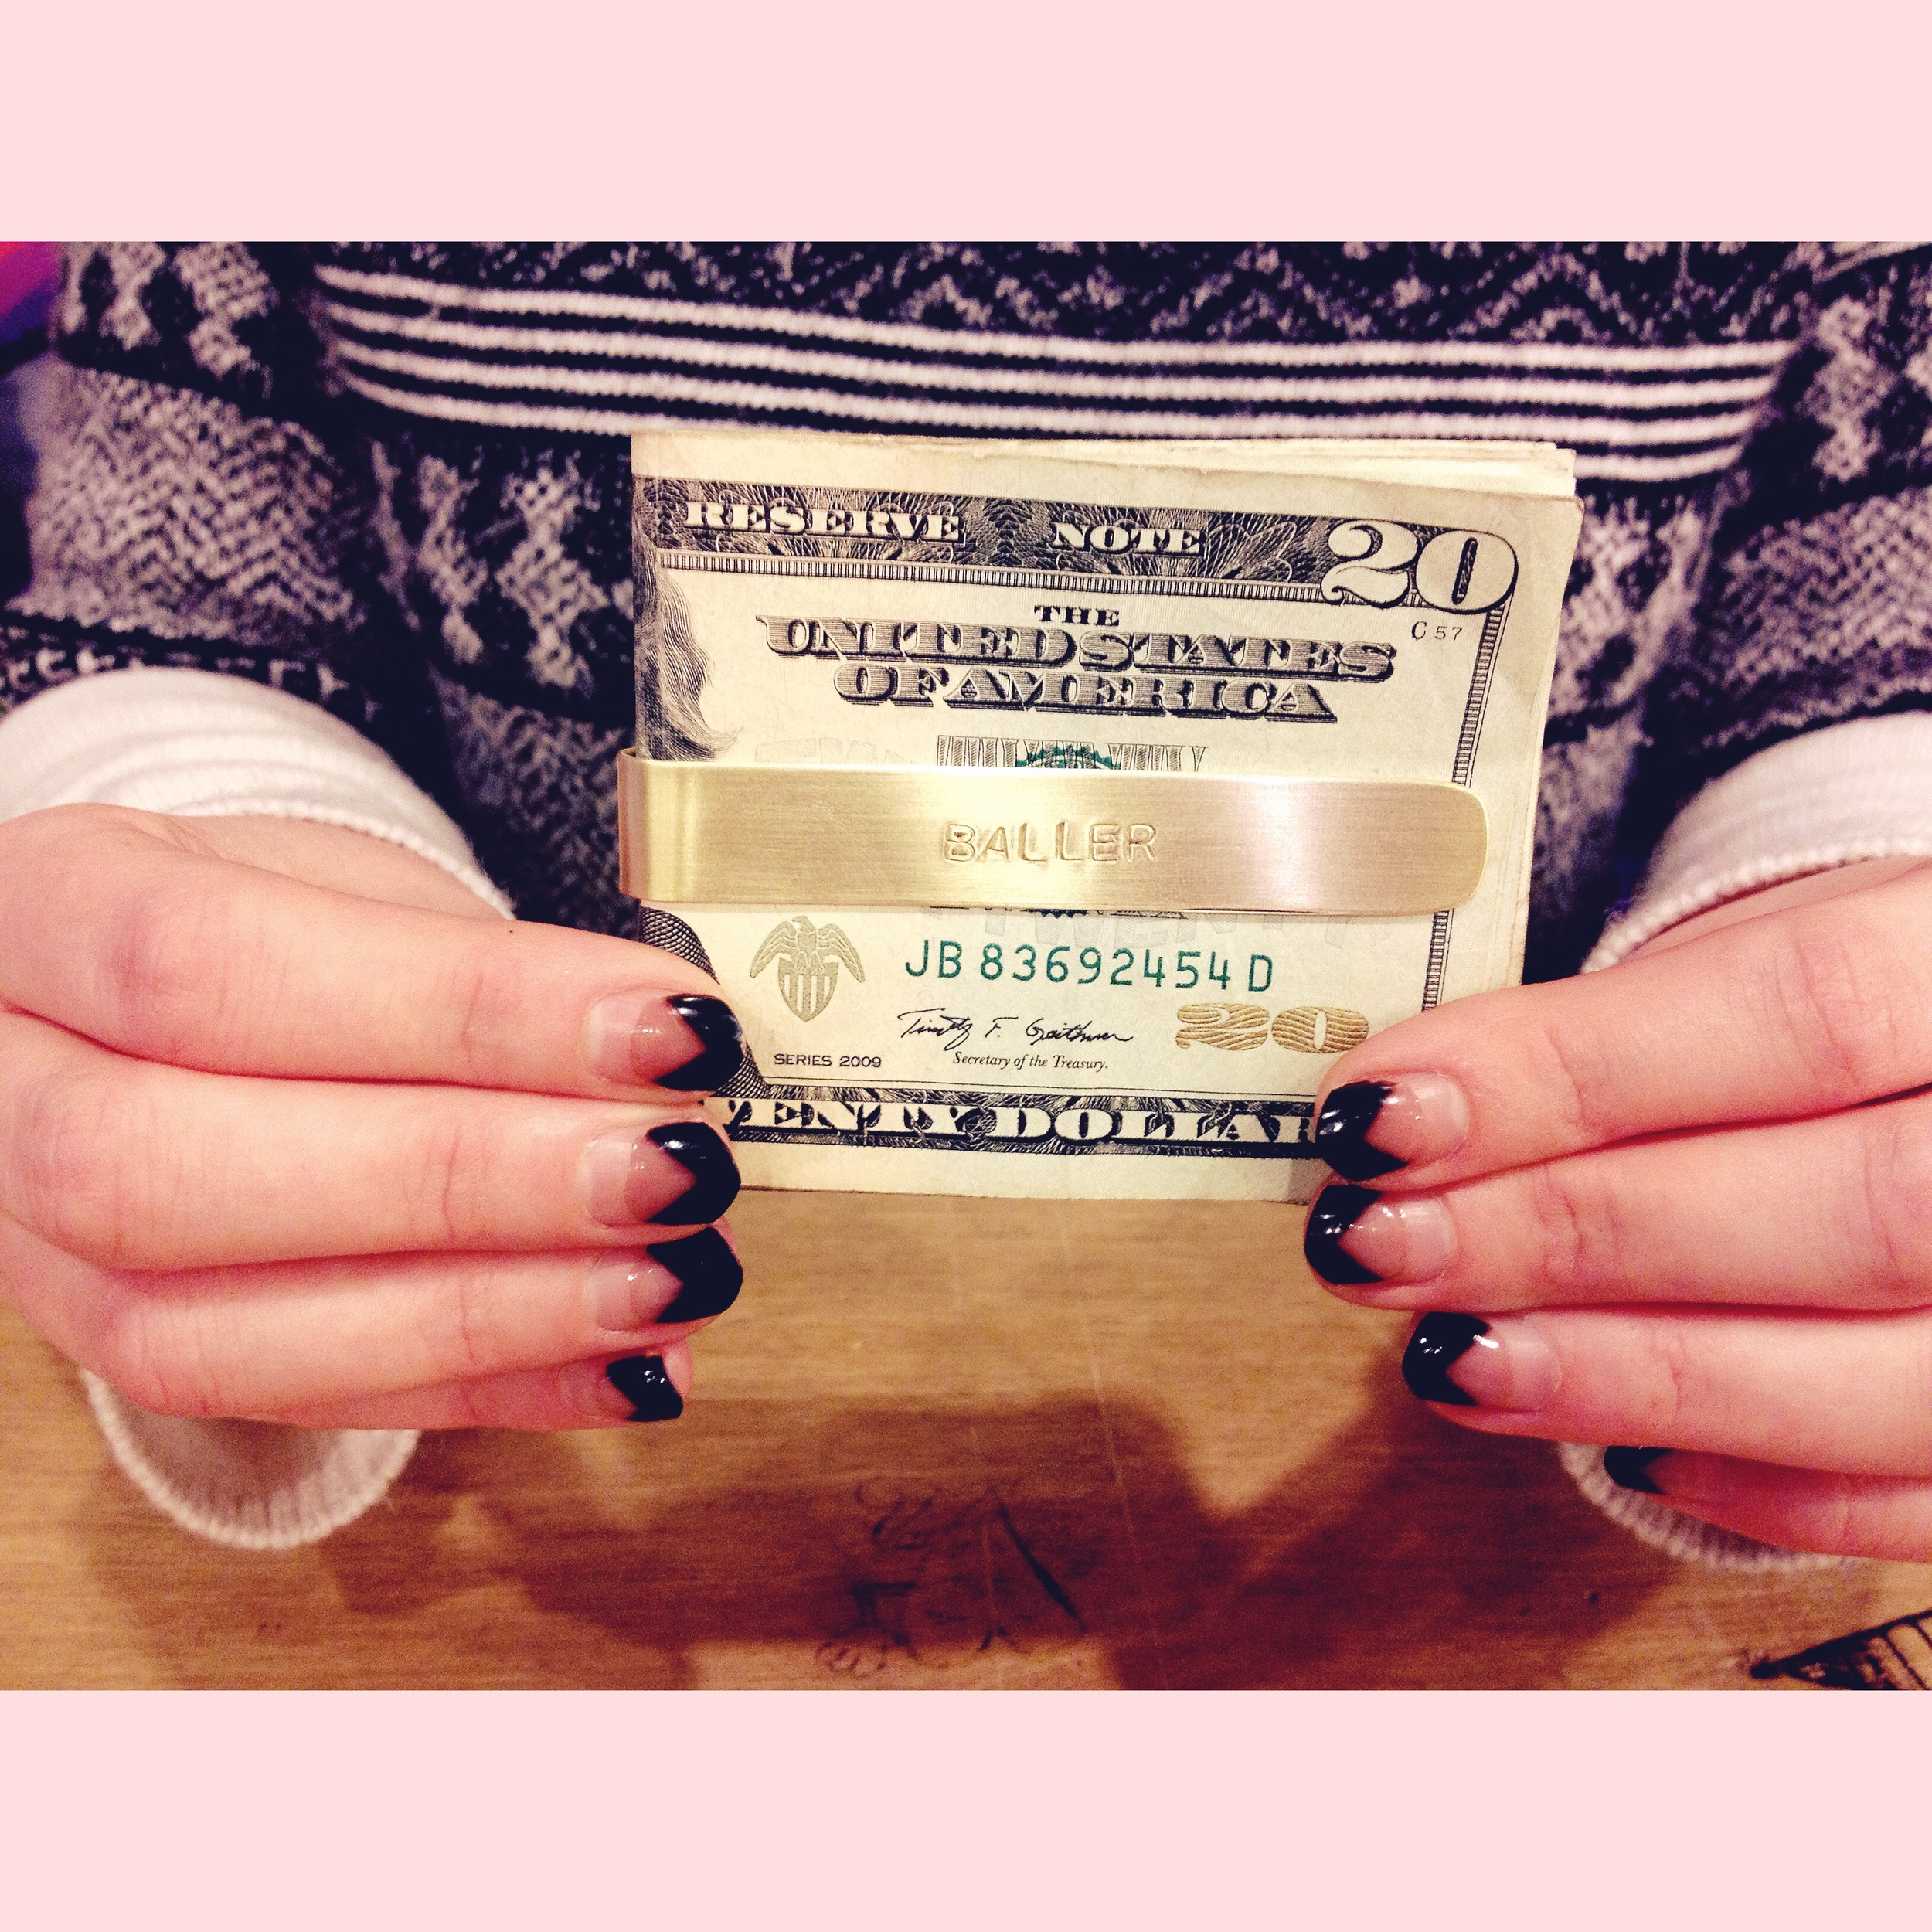 """The women of  American Mortals Salon  got it like that. Seen here:custom stamped Money Clip """"Baller"""" edition"""